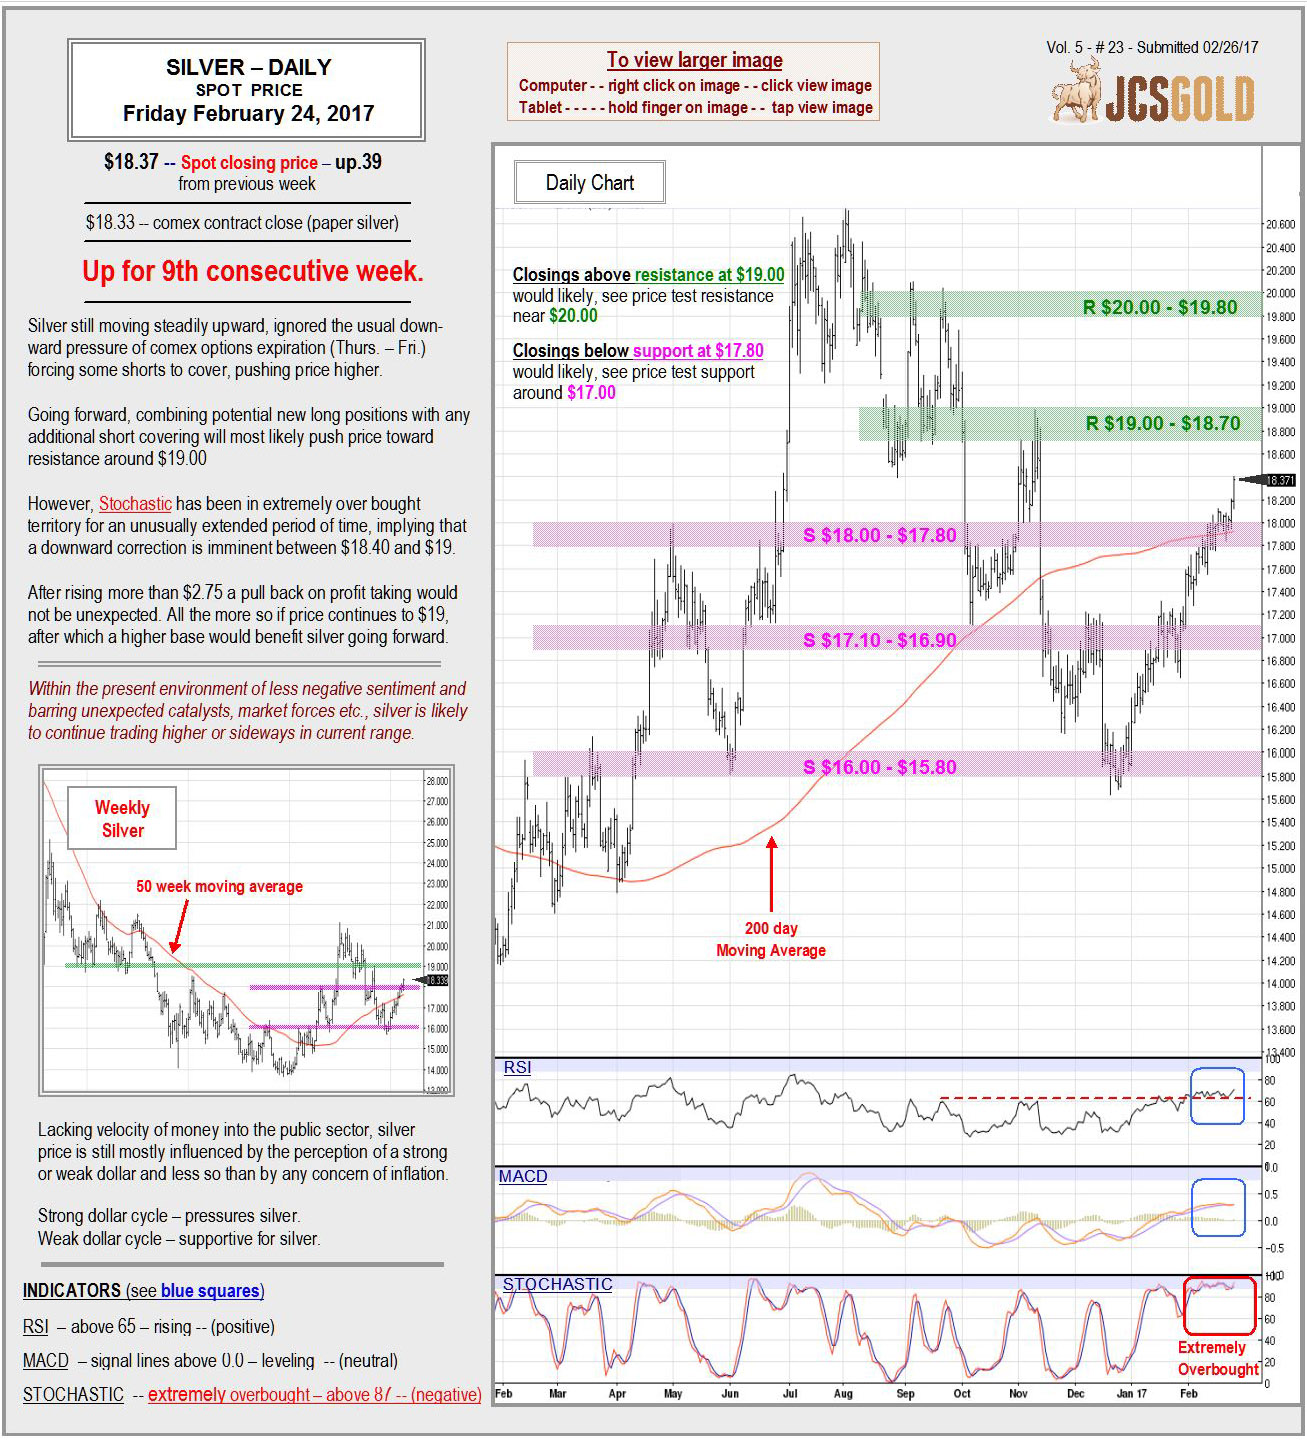 Feb 24, 2017 chart & commentary